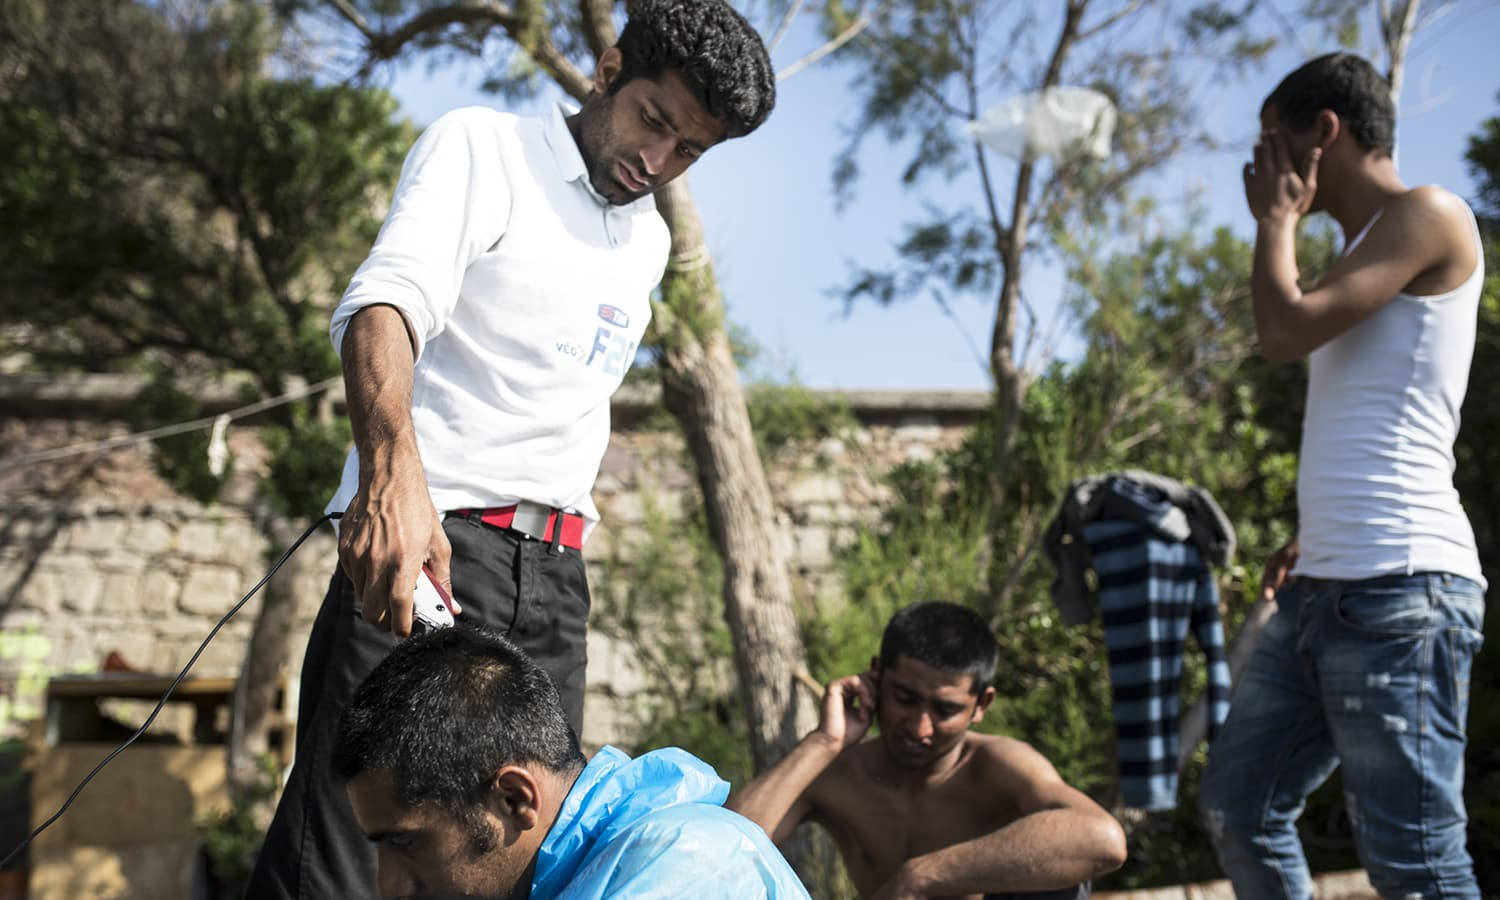 A young Pakistani man named Amer cut Abdil's hair at the No Borders Kitchen, an unlicensed camp run by European anarchists on the shore of Lesbos island in Greece.